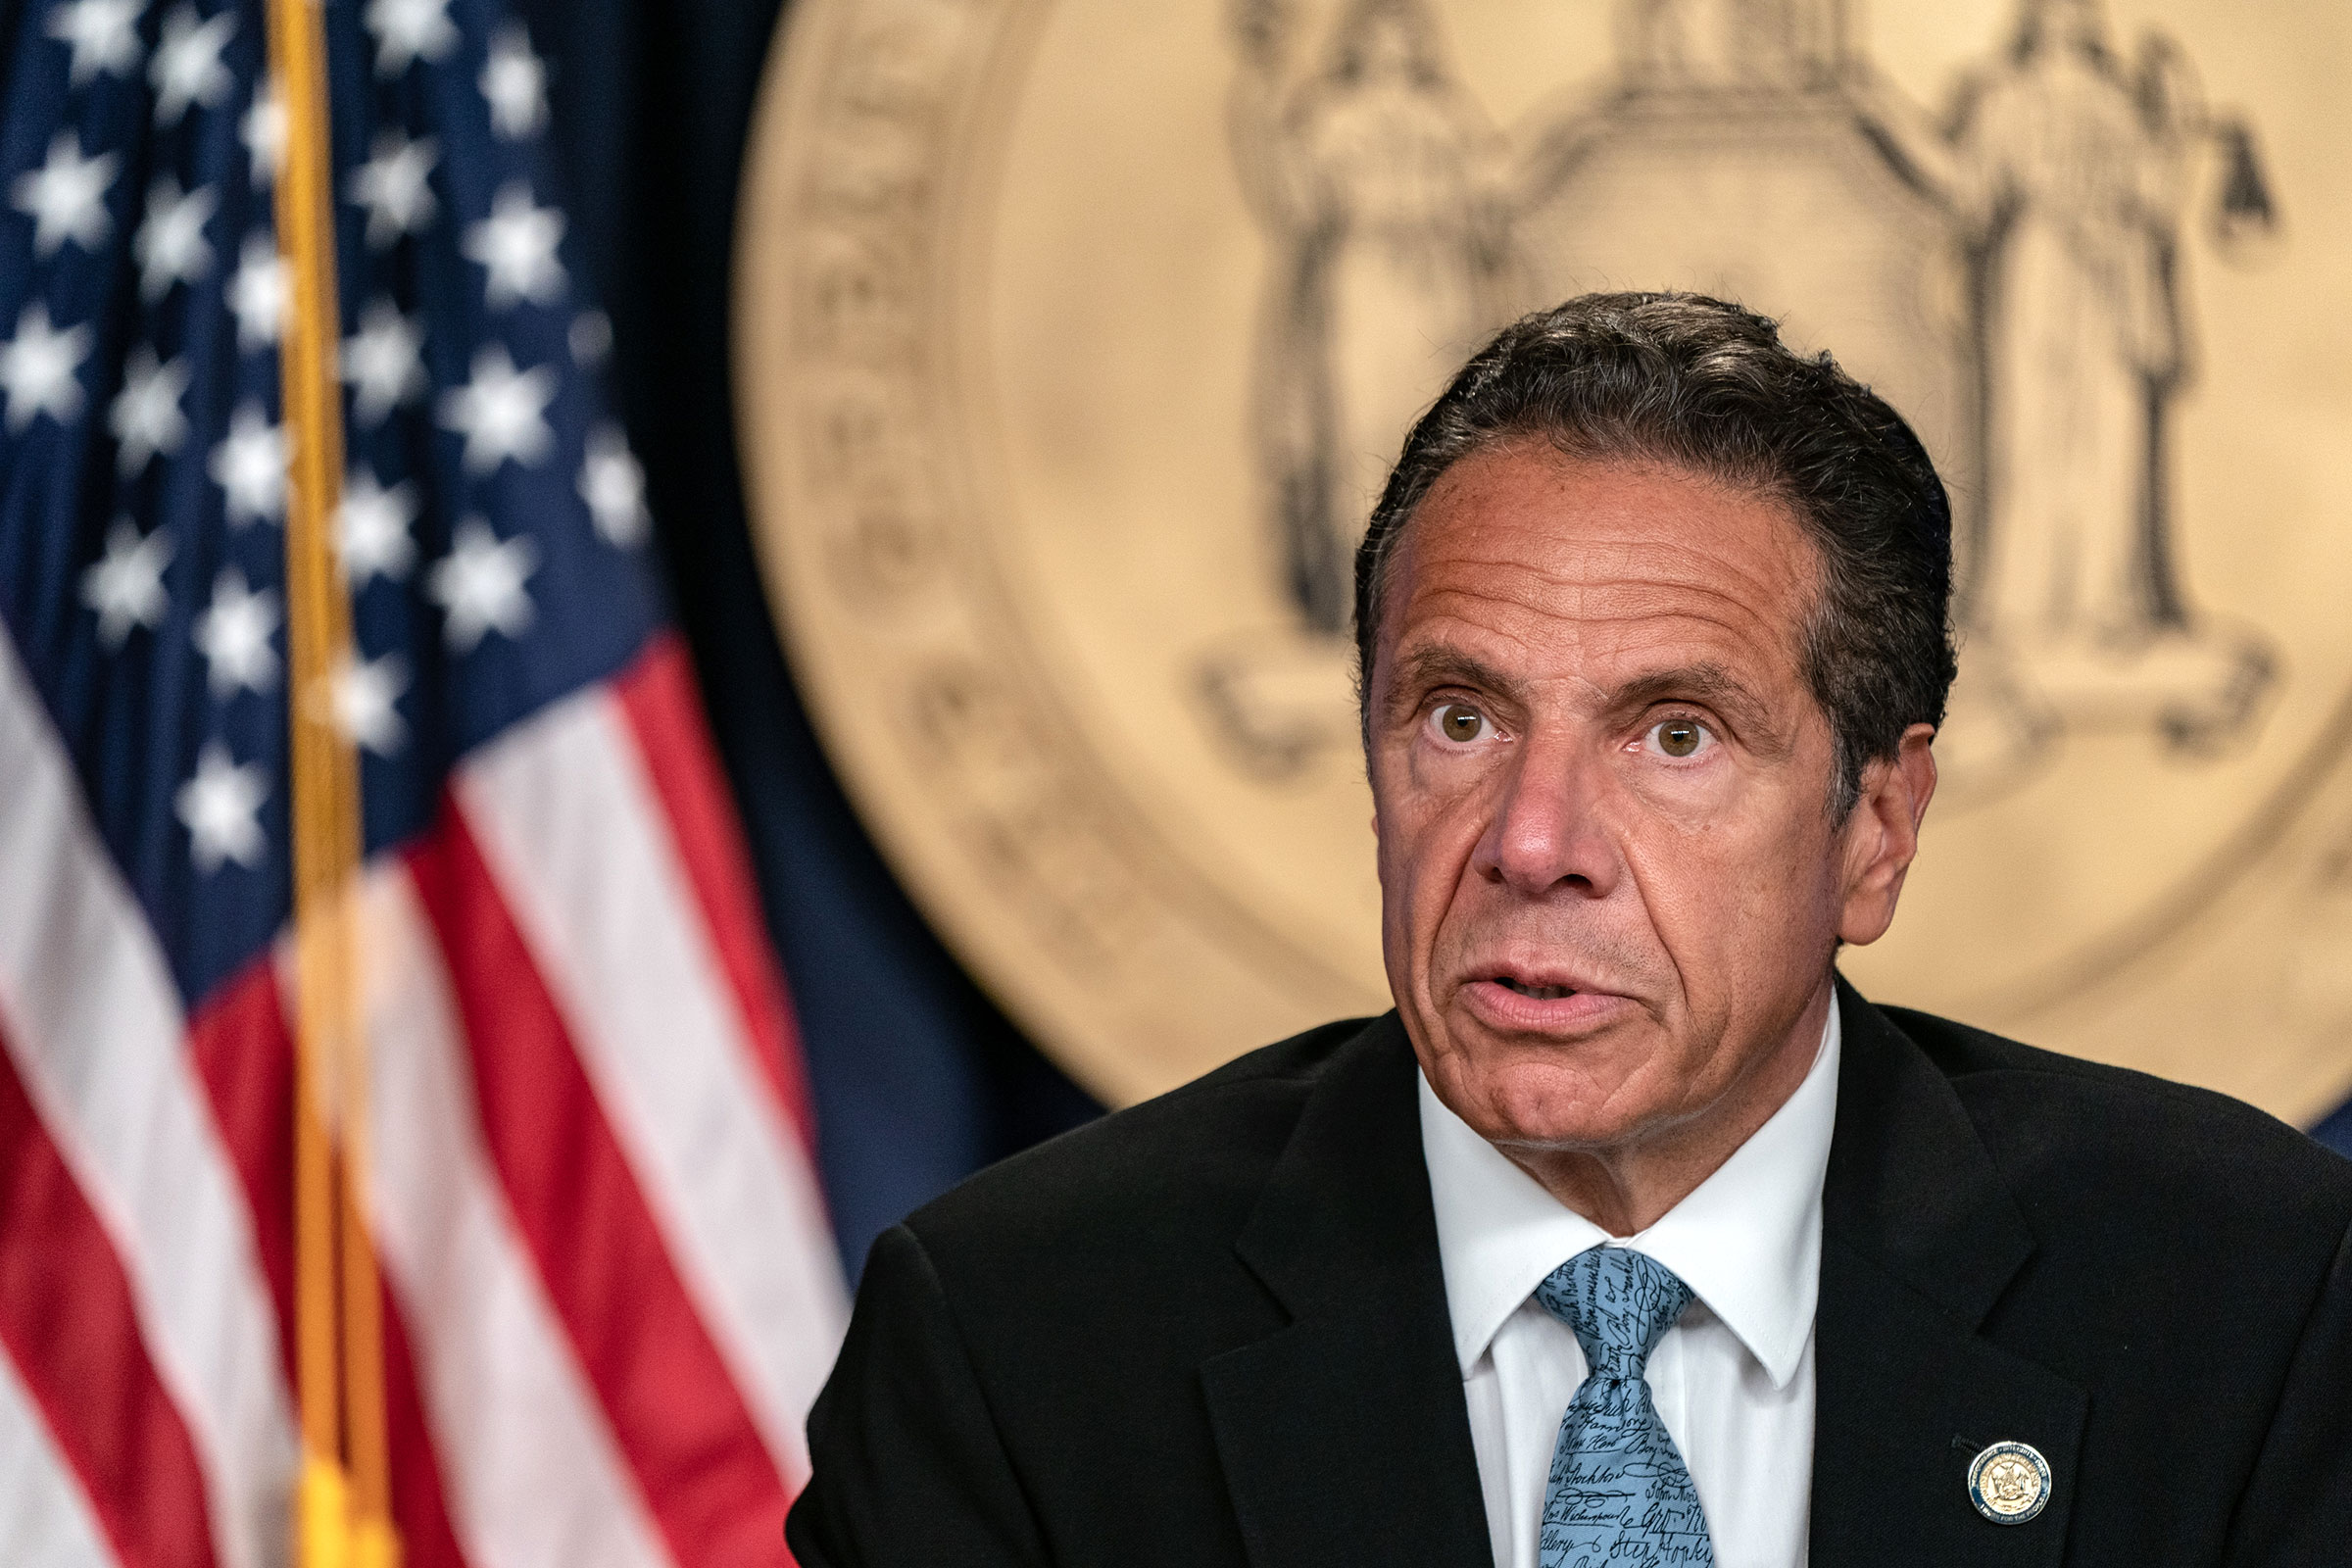 NY Gov. Andrew Cuomo reverses course on family Thanksgiving plans amid backlash